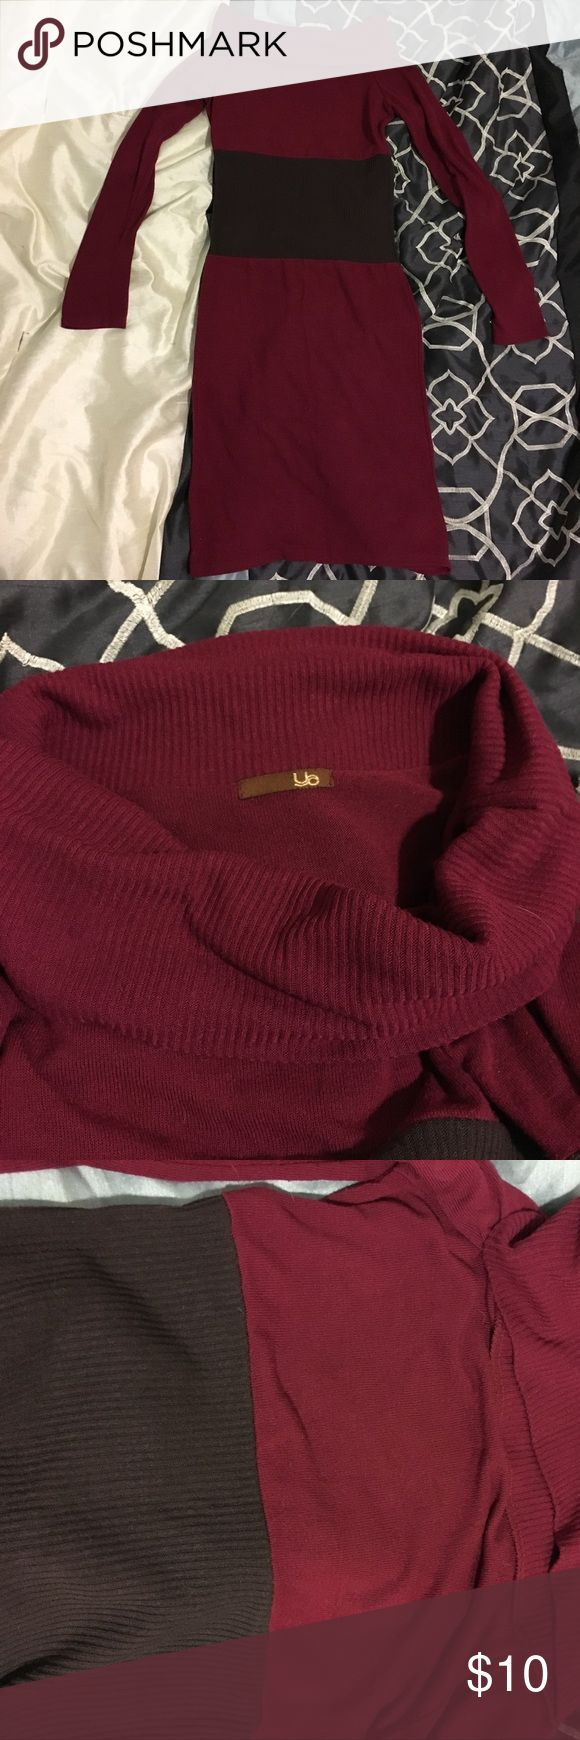 NWOT Maroon and Brown Sweater Dress Stylish, maroon and brown sweater dress. Never worn and in brand new condition. Would be great for the office or a night out on the town. Ya Los Angeles Dresses Long Sleeve